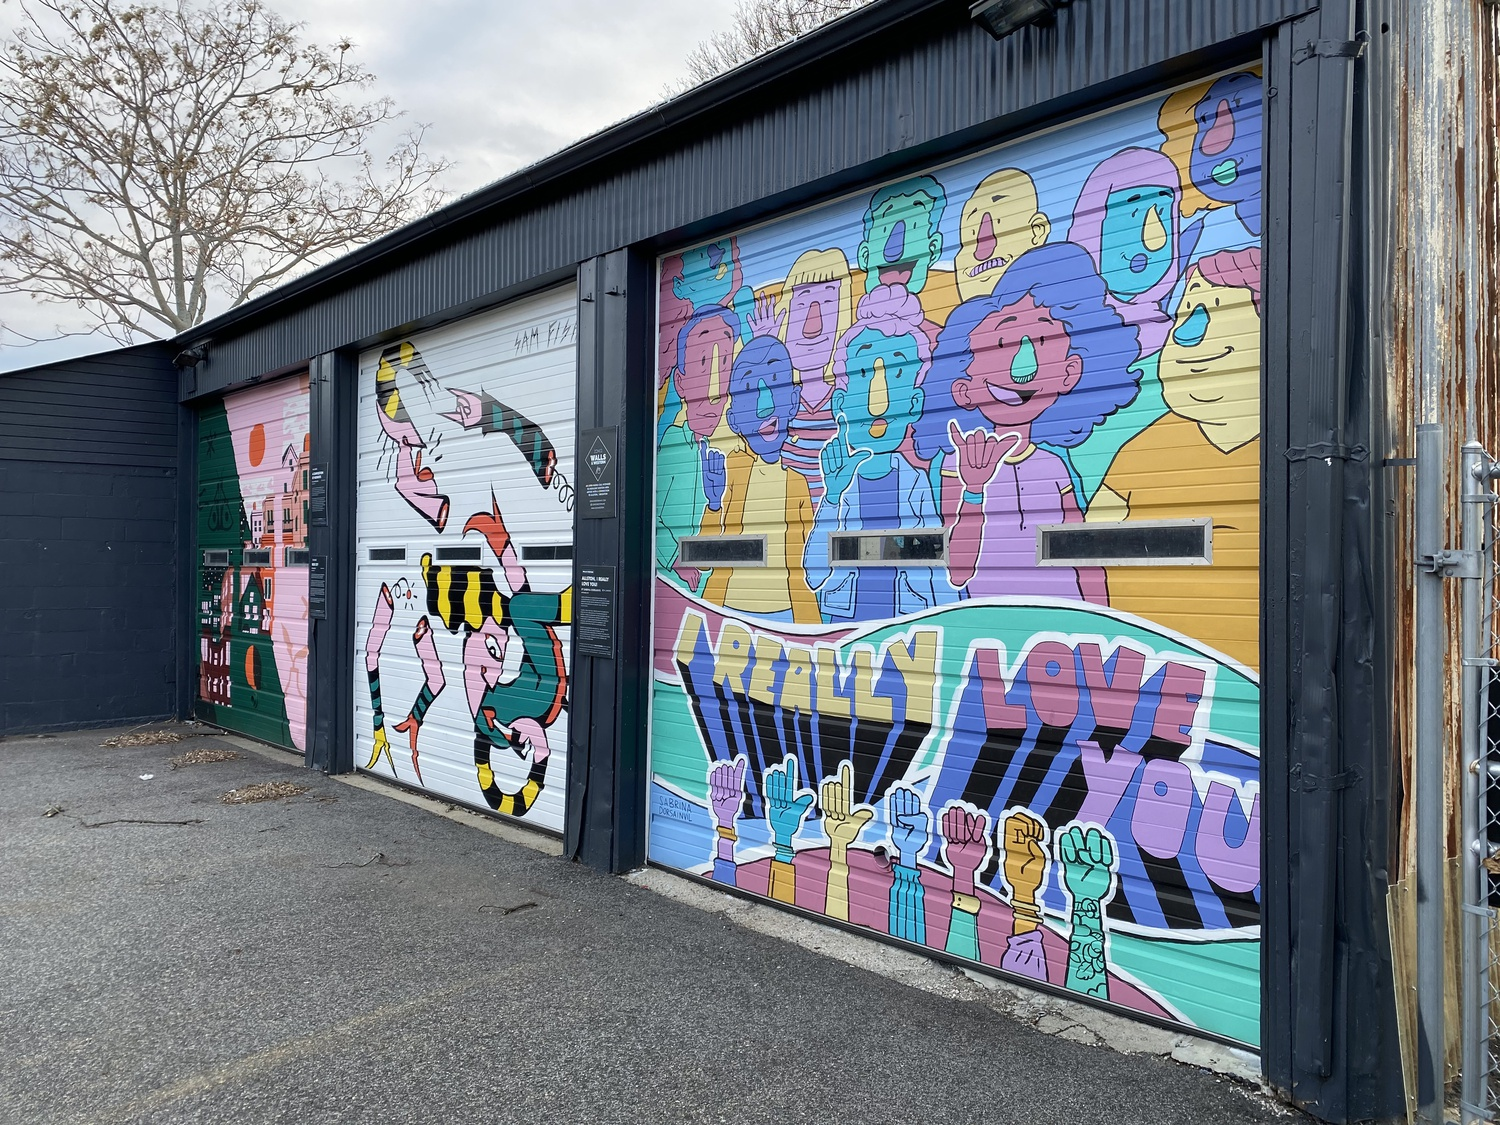 These murals are located at 267 Western Avenue, and are part of the Walls on Western program of the Harvard initiative Zone 3. From left to right, they are by artists Julia Emiliani, Sam Fish, and Sabrina Dorsainvil.